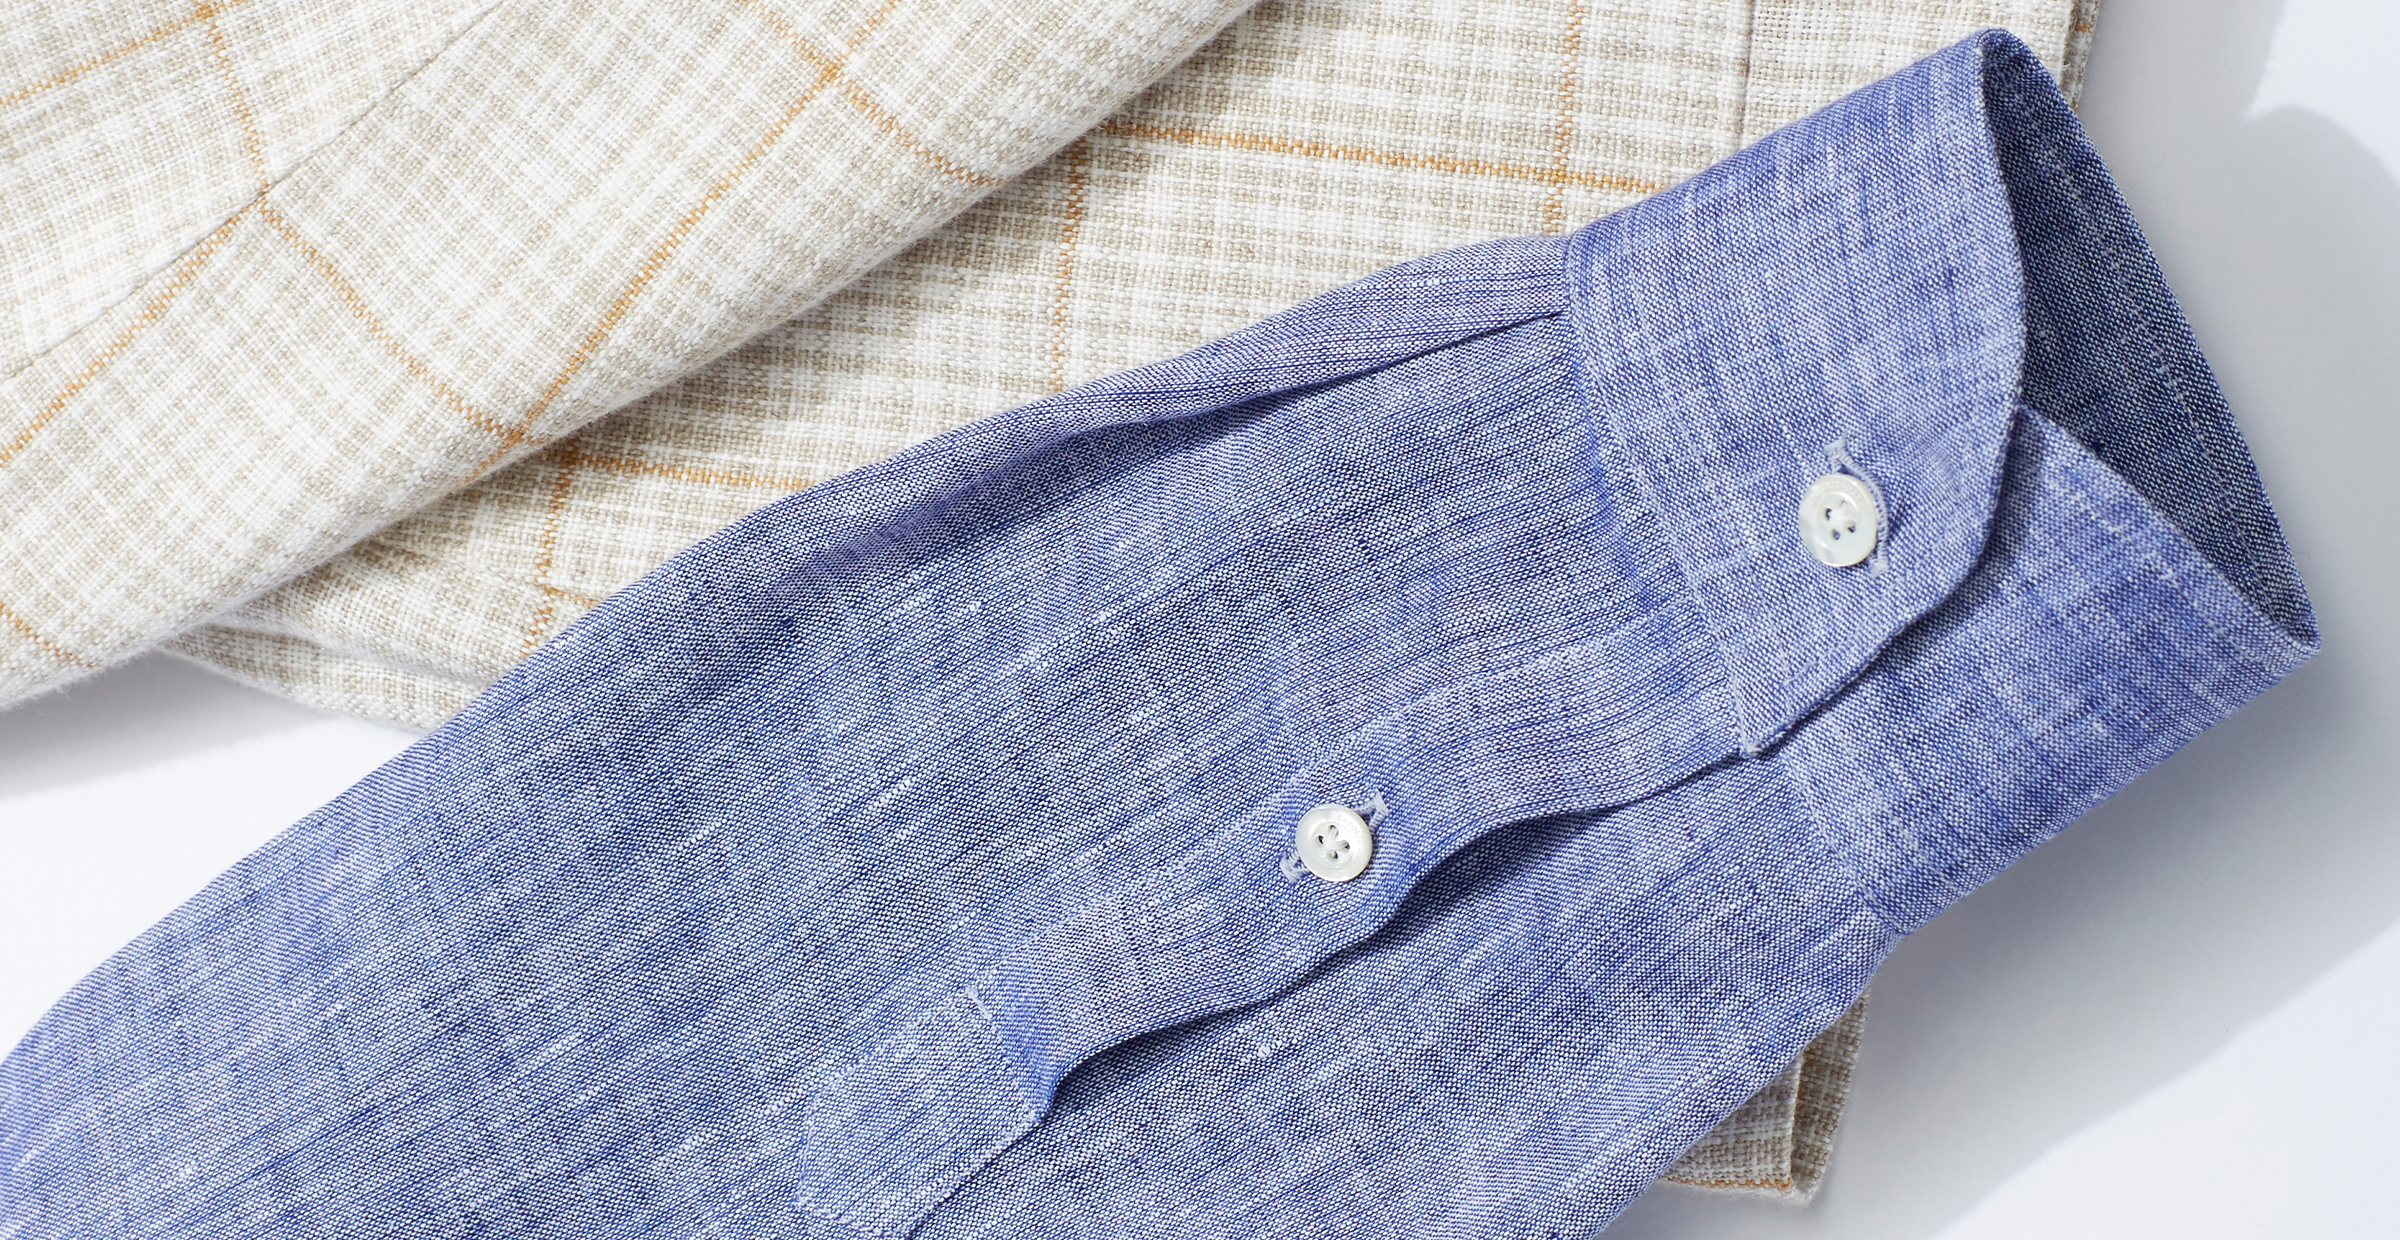 The 5 Most Breathable Summer Fabrics for Men